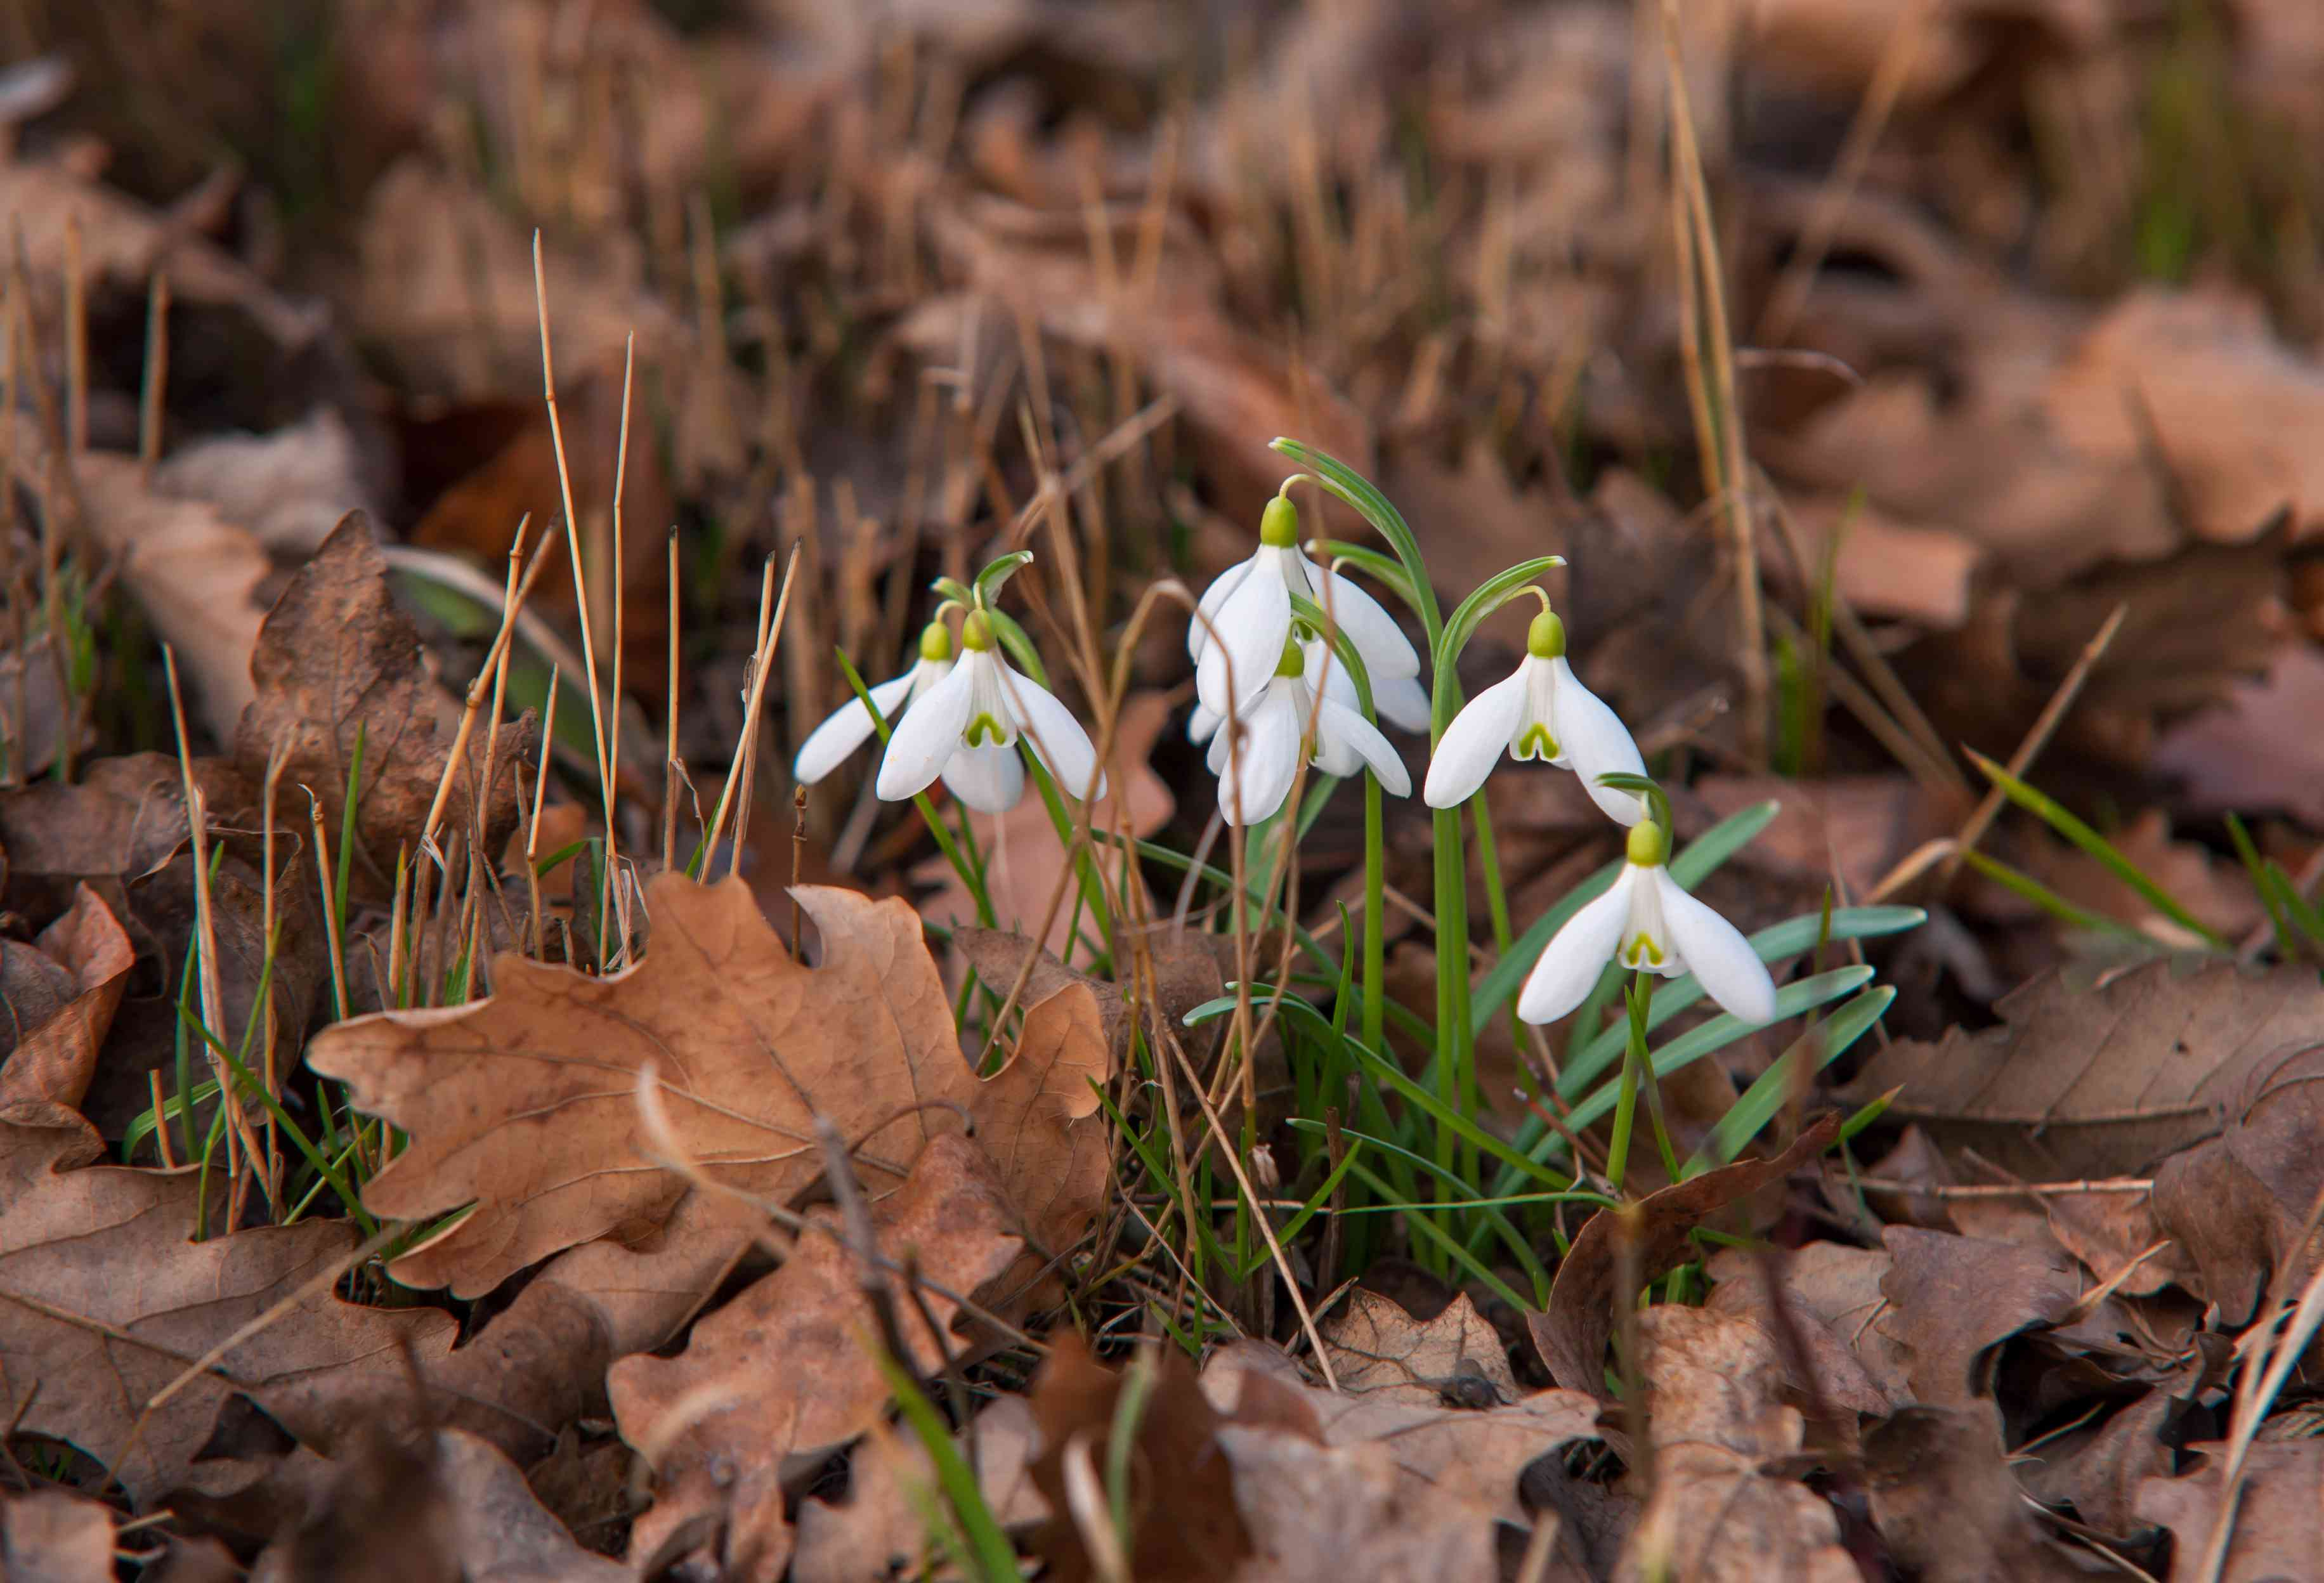 Small snowdrops galanthus nivalis plants in middle of brown leaves with white flowers